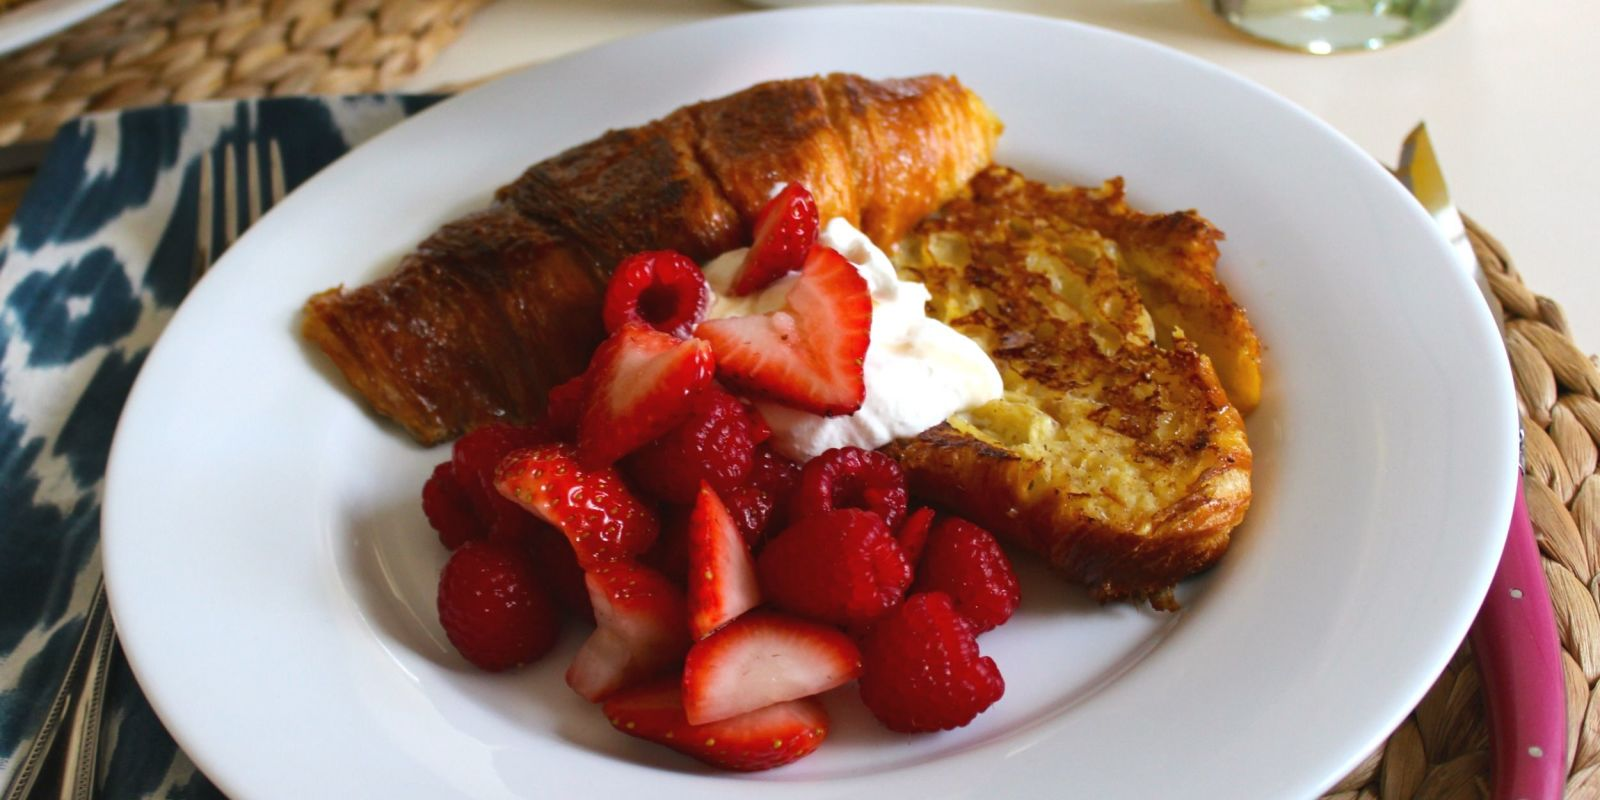 Croissant French Toast How To Make Perfect Grilled Tuna Steaks Delish